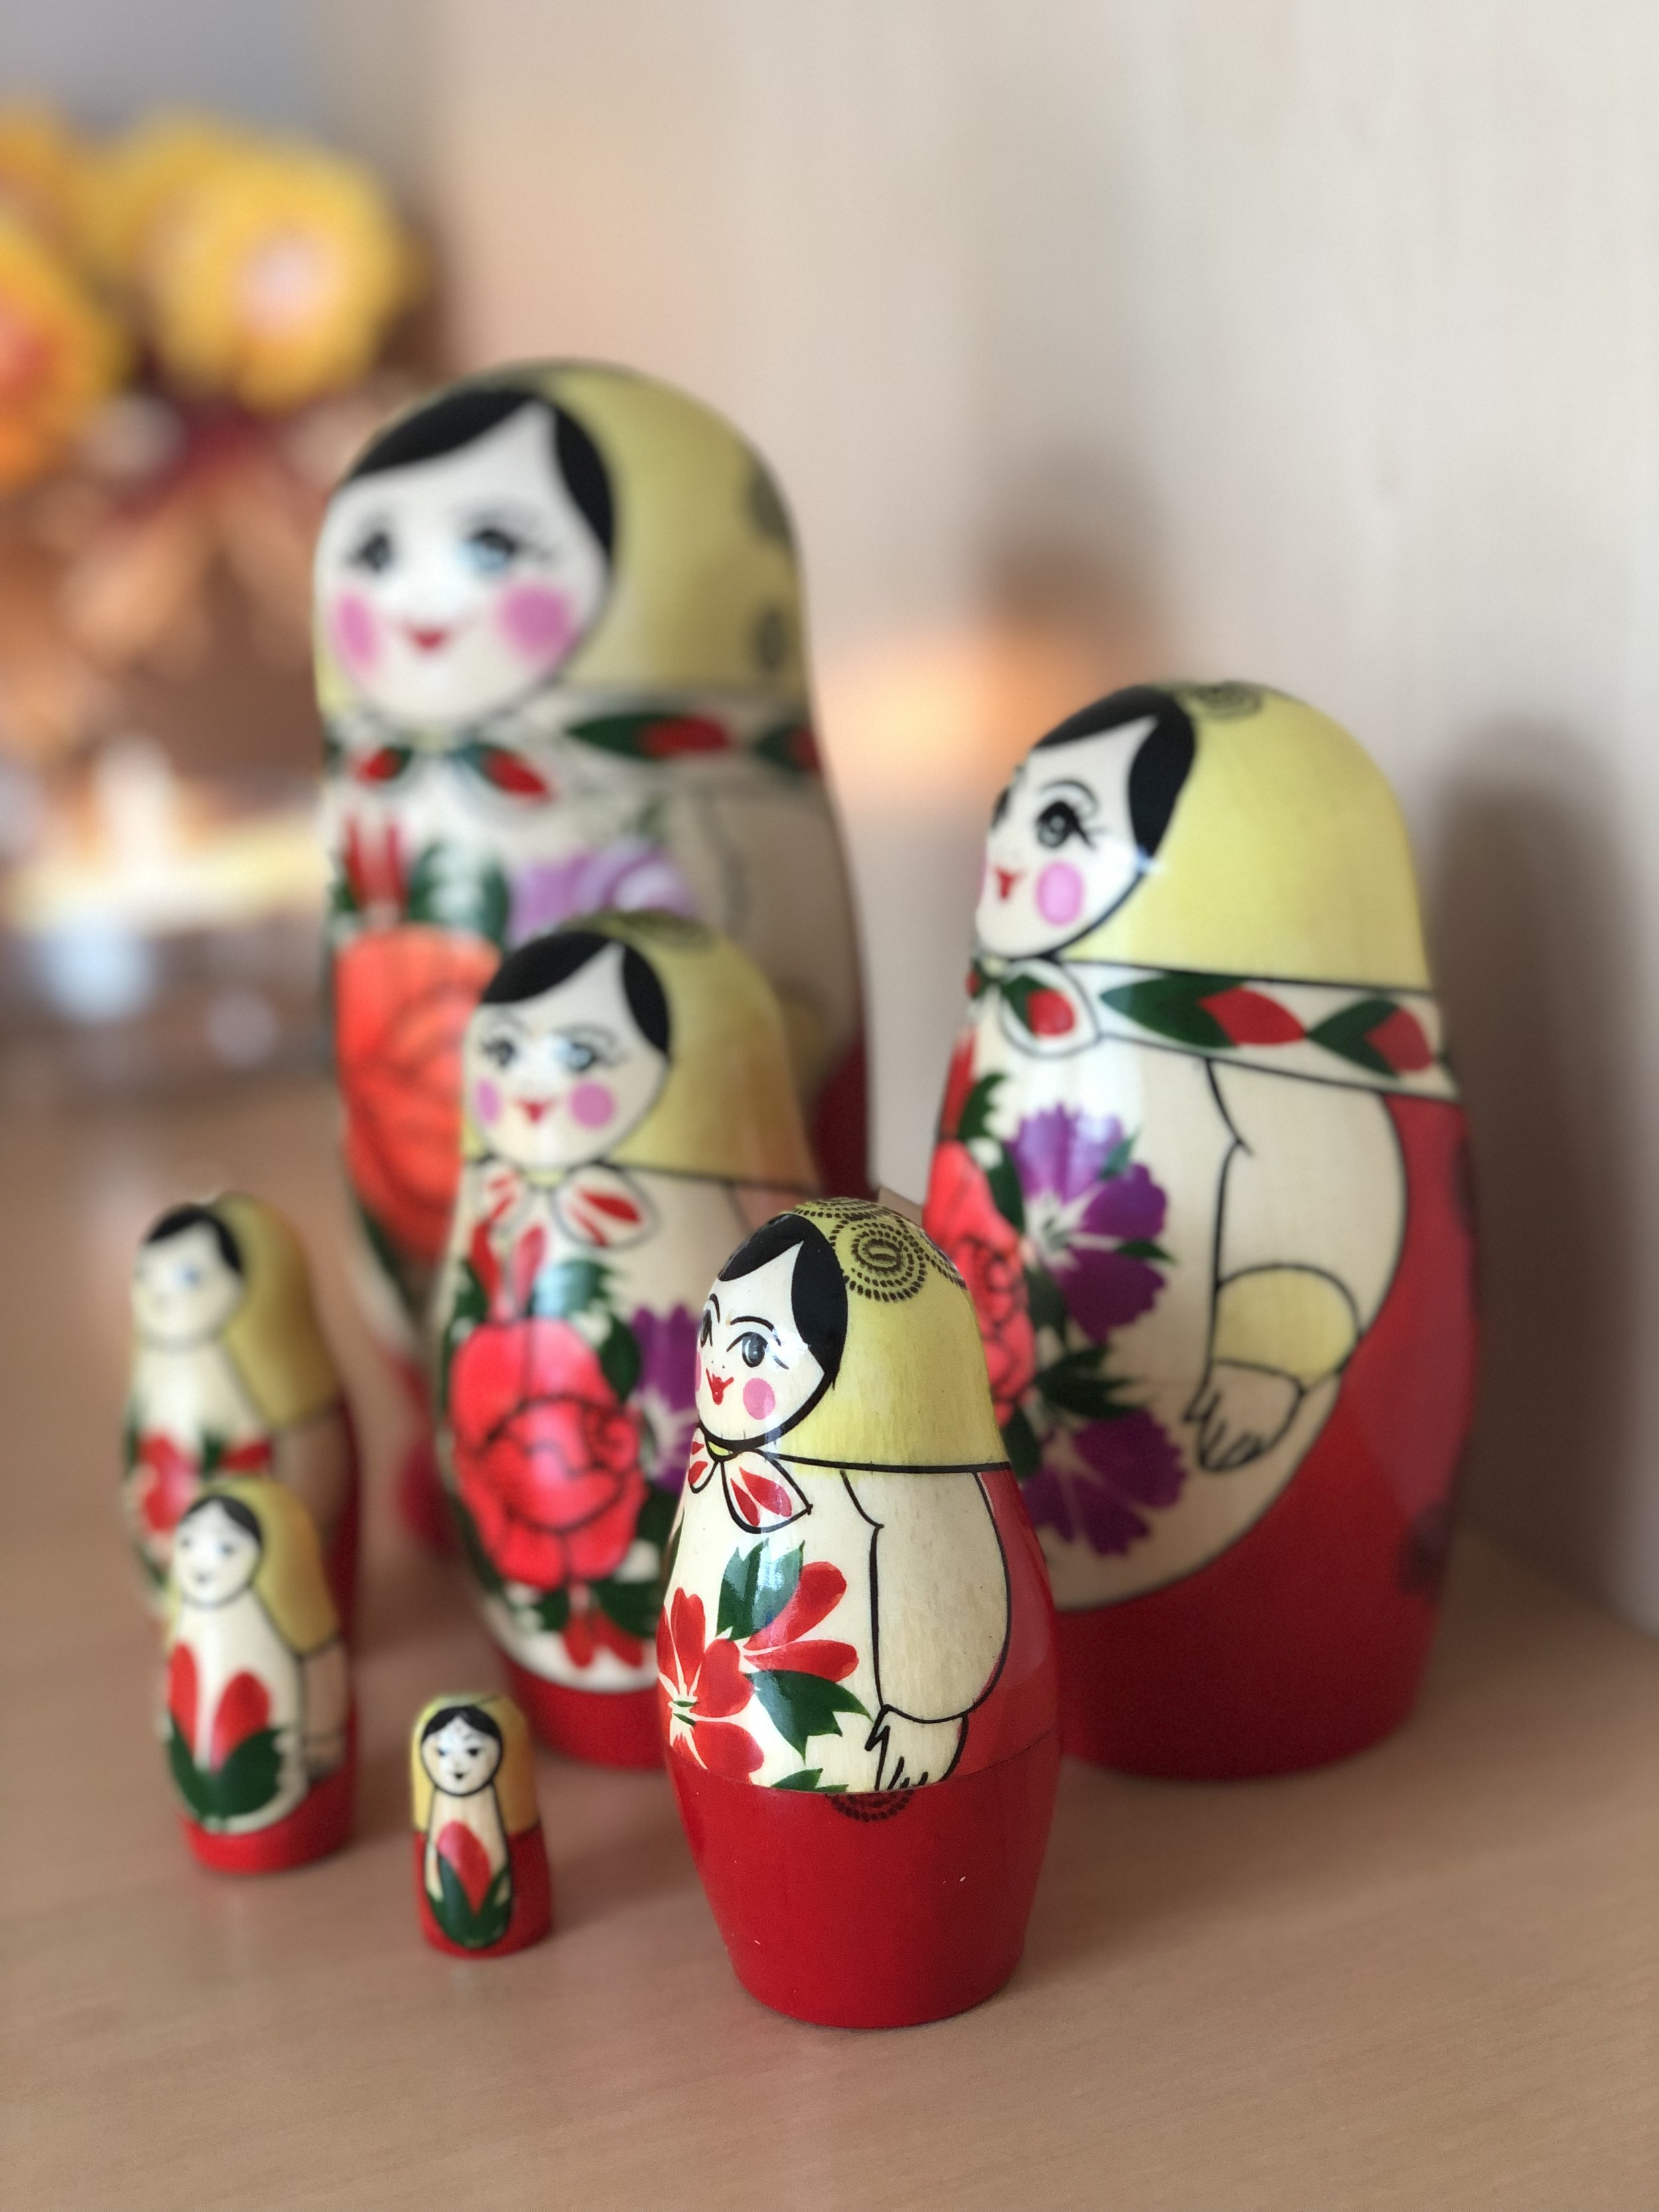 The Inner Child Russian Doll's